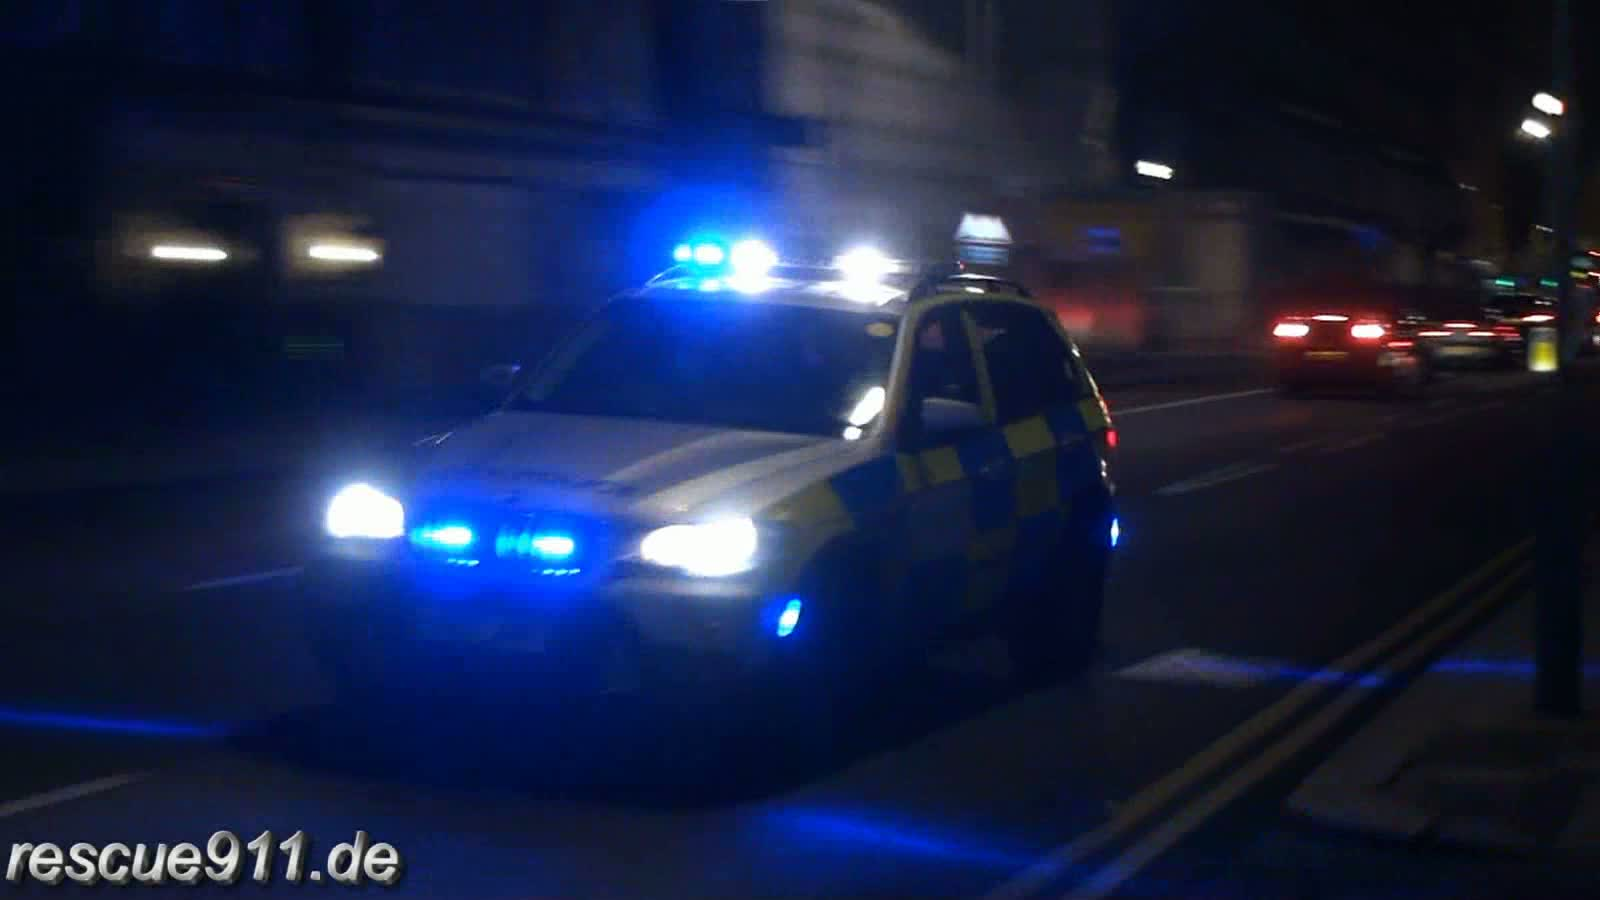 Armed Response Vehicle City of London Police (stream)